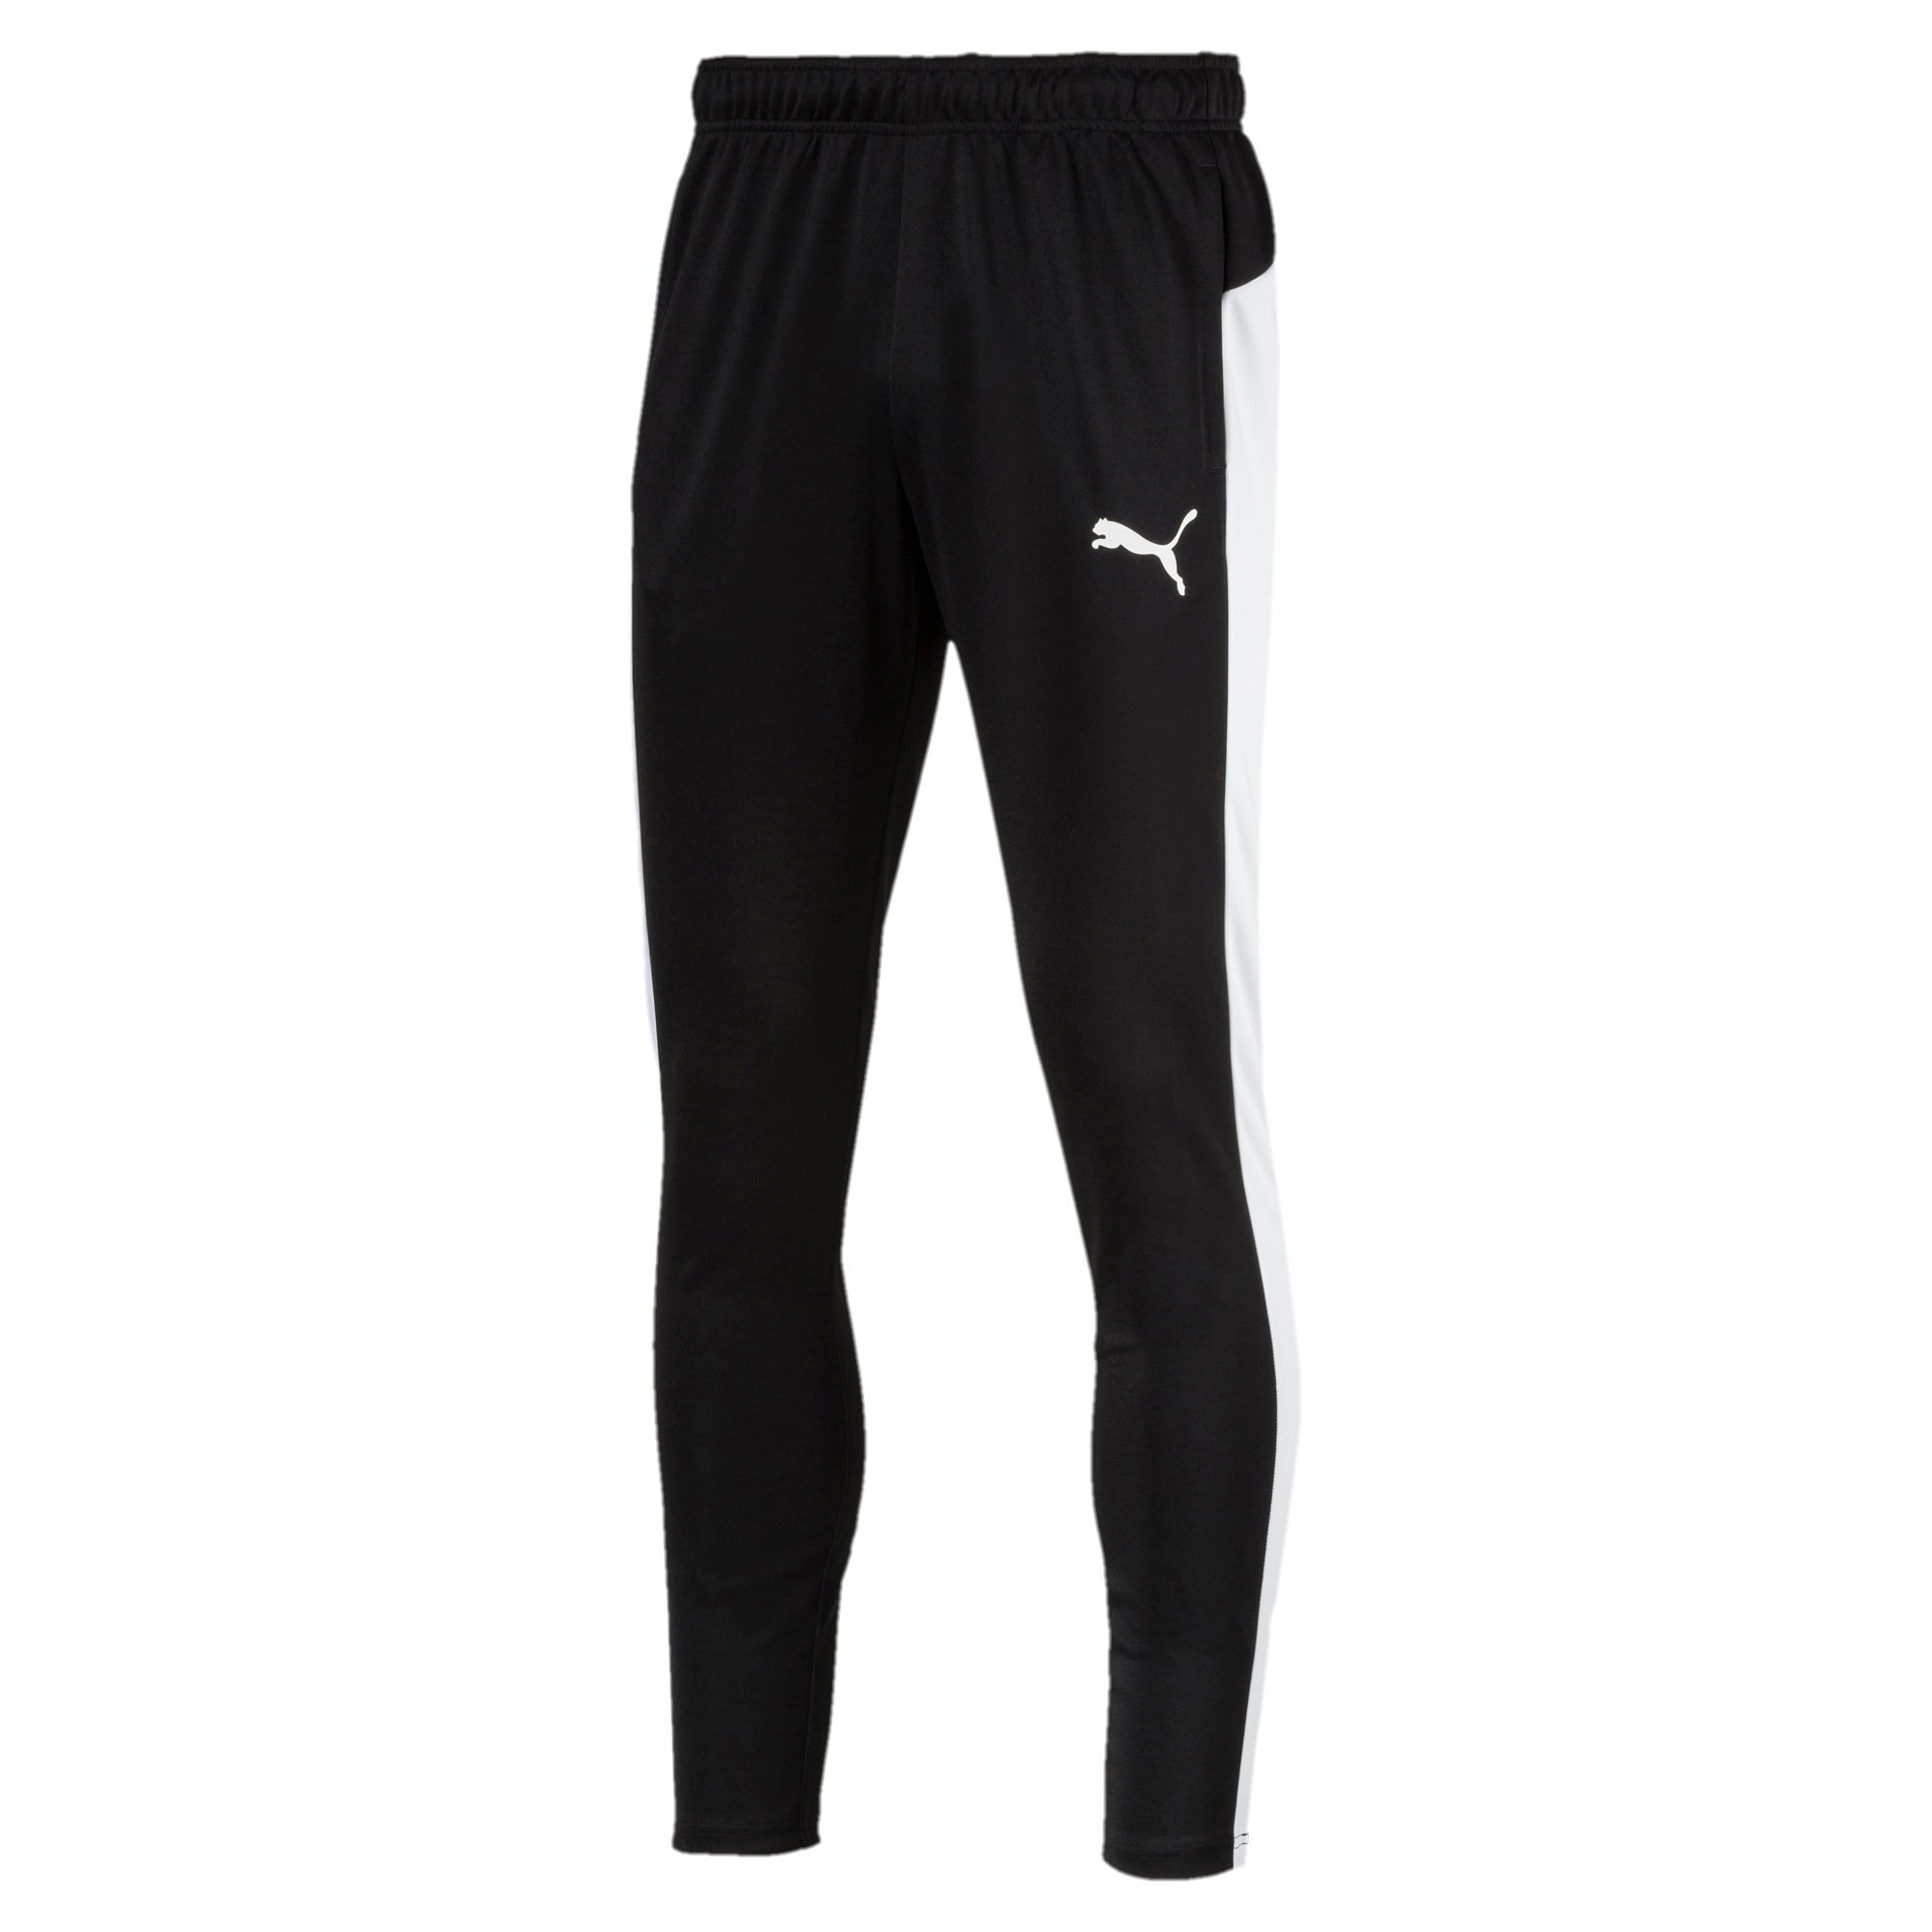 Thumbnail 1 of Active Tricot Men's Sweatpants, Puma Black-Puma White, medium